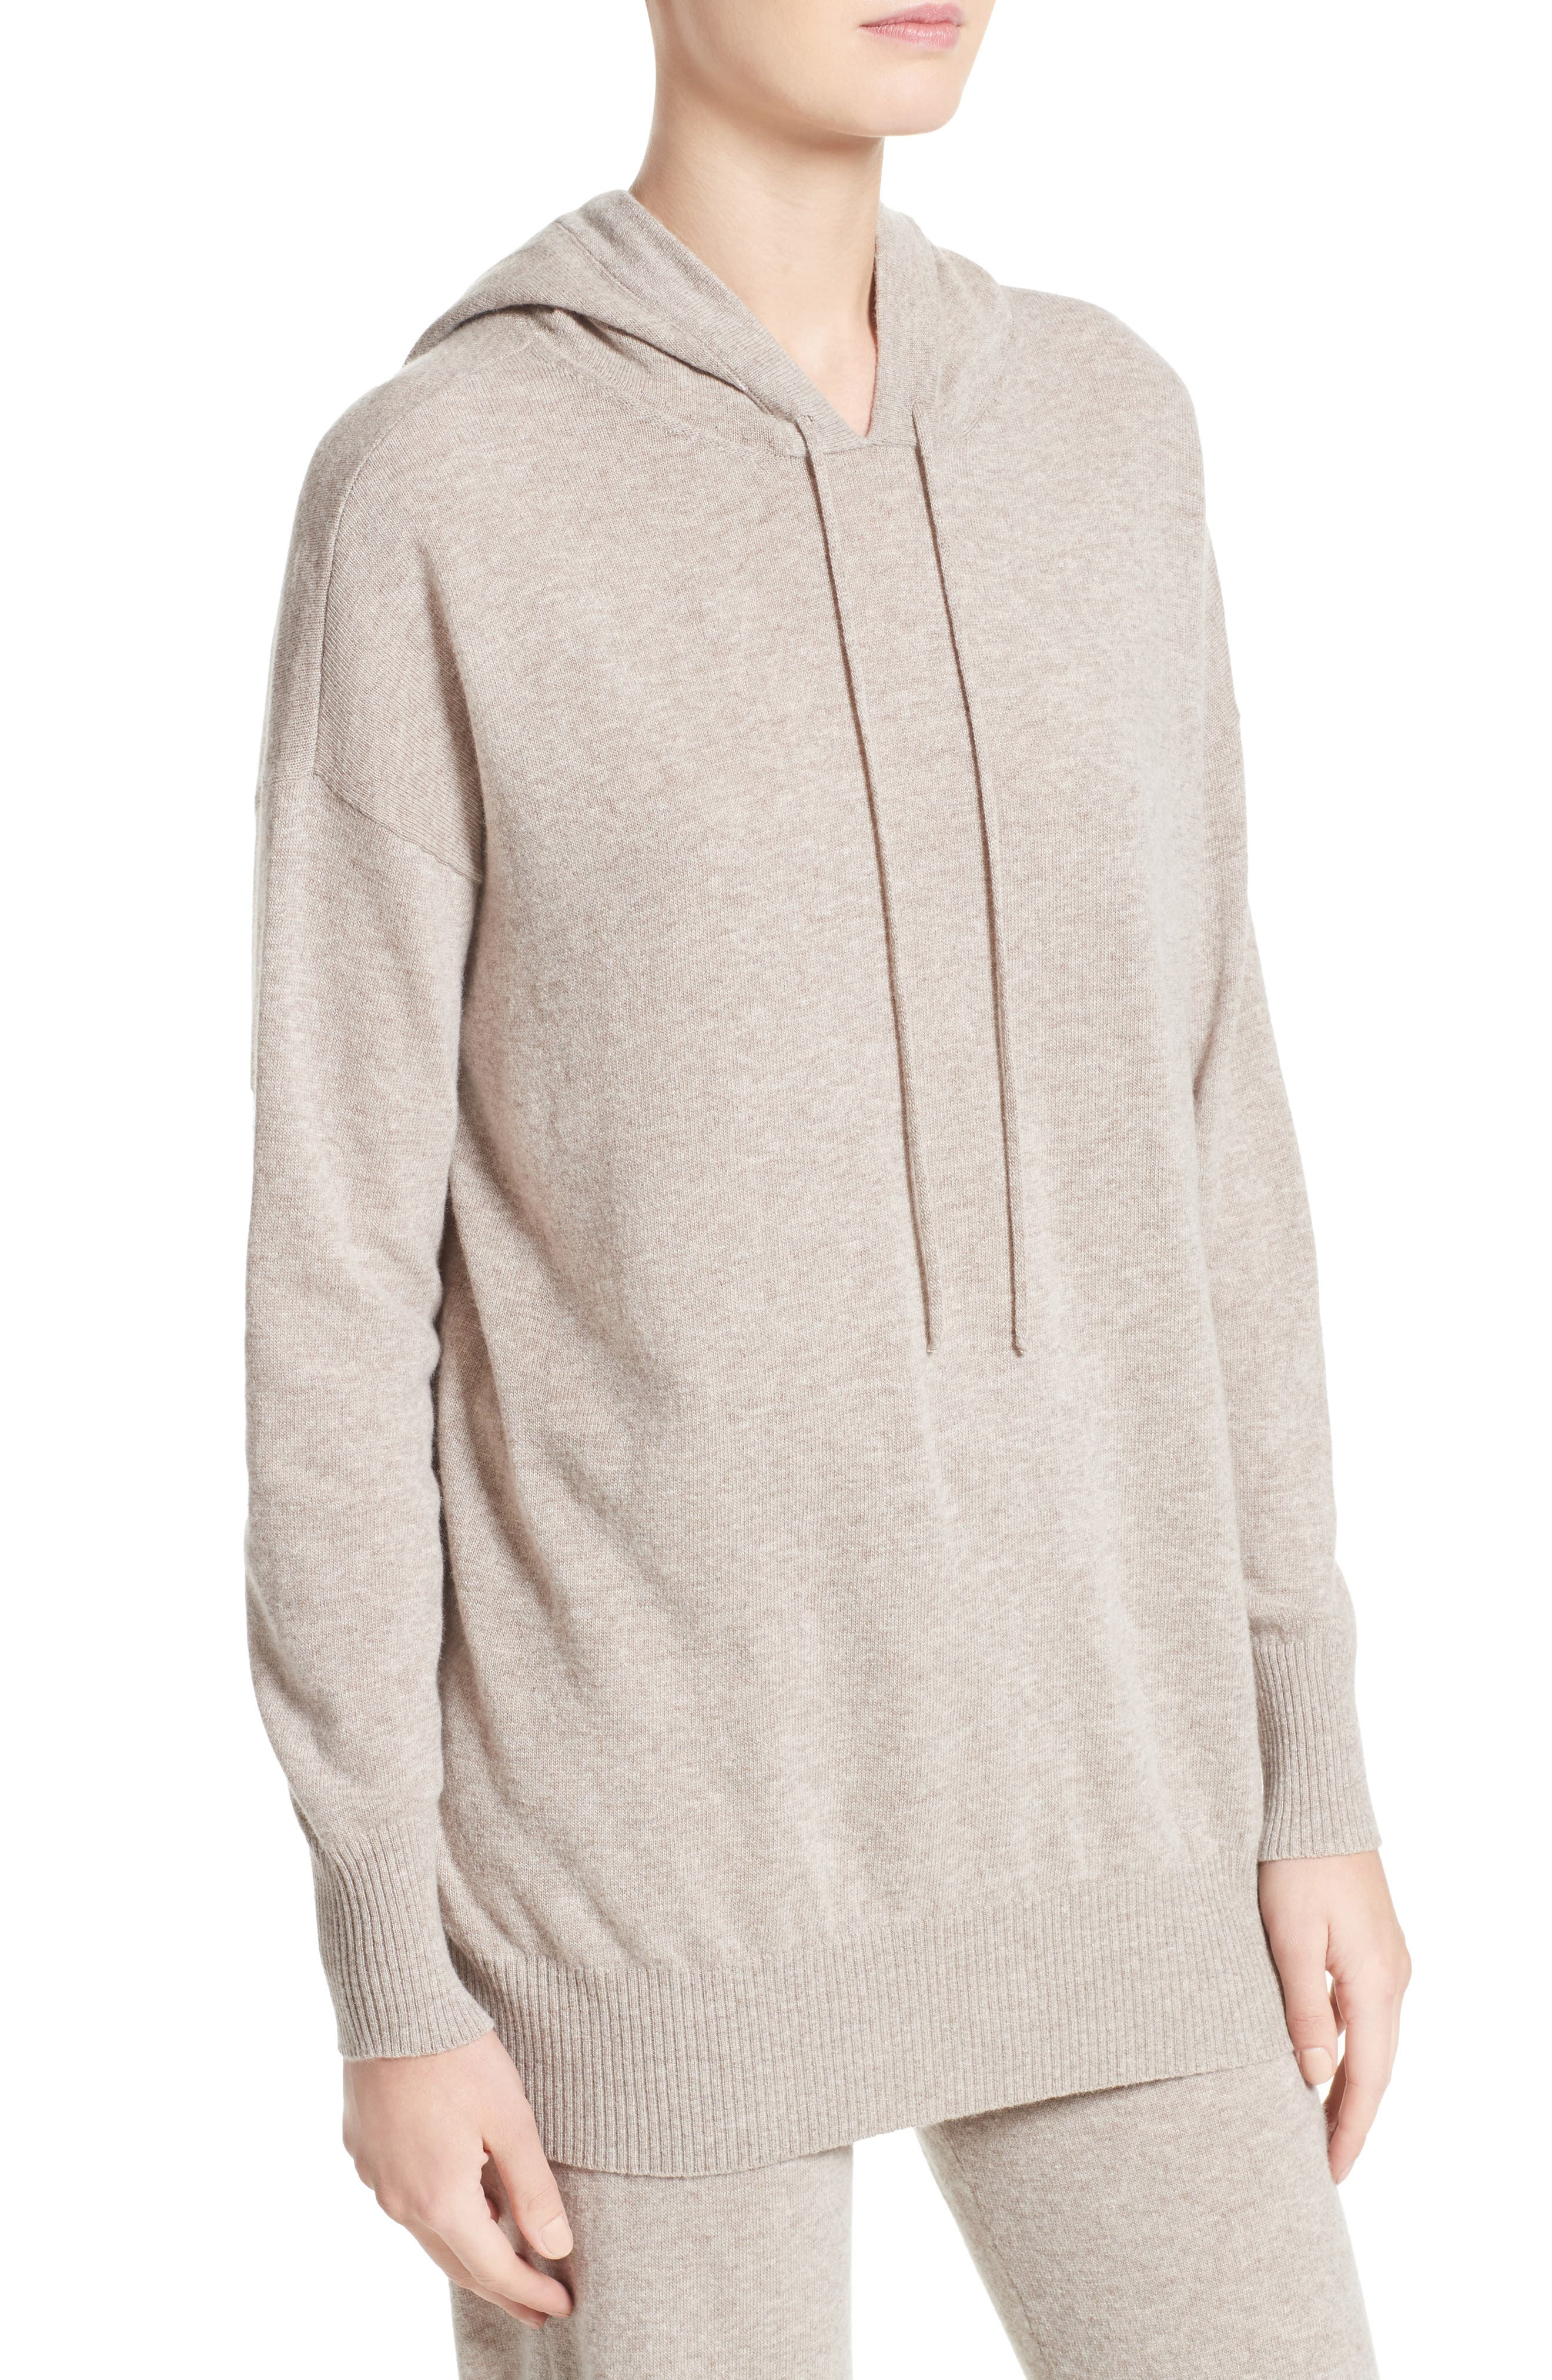 Nitra Wool & Cashmere Hooded Sweater,                             Alternate thumbnail 4, color,